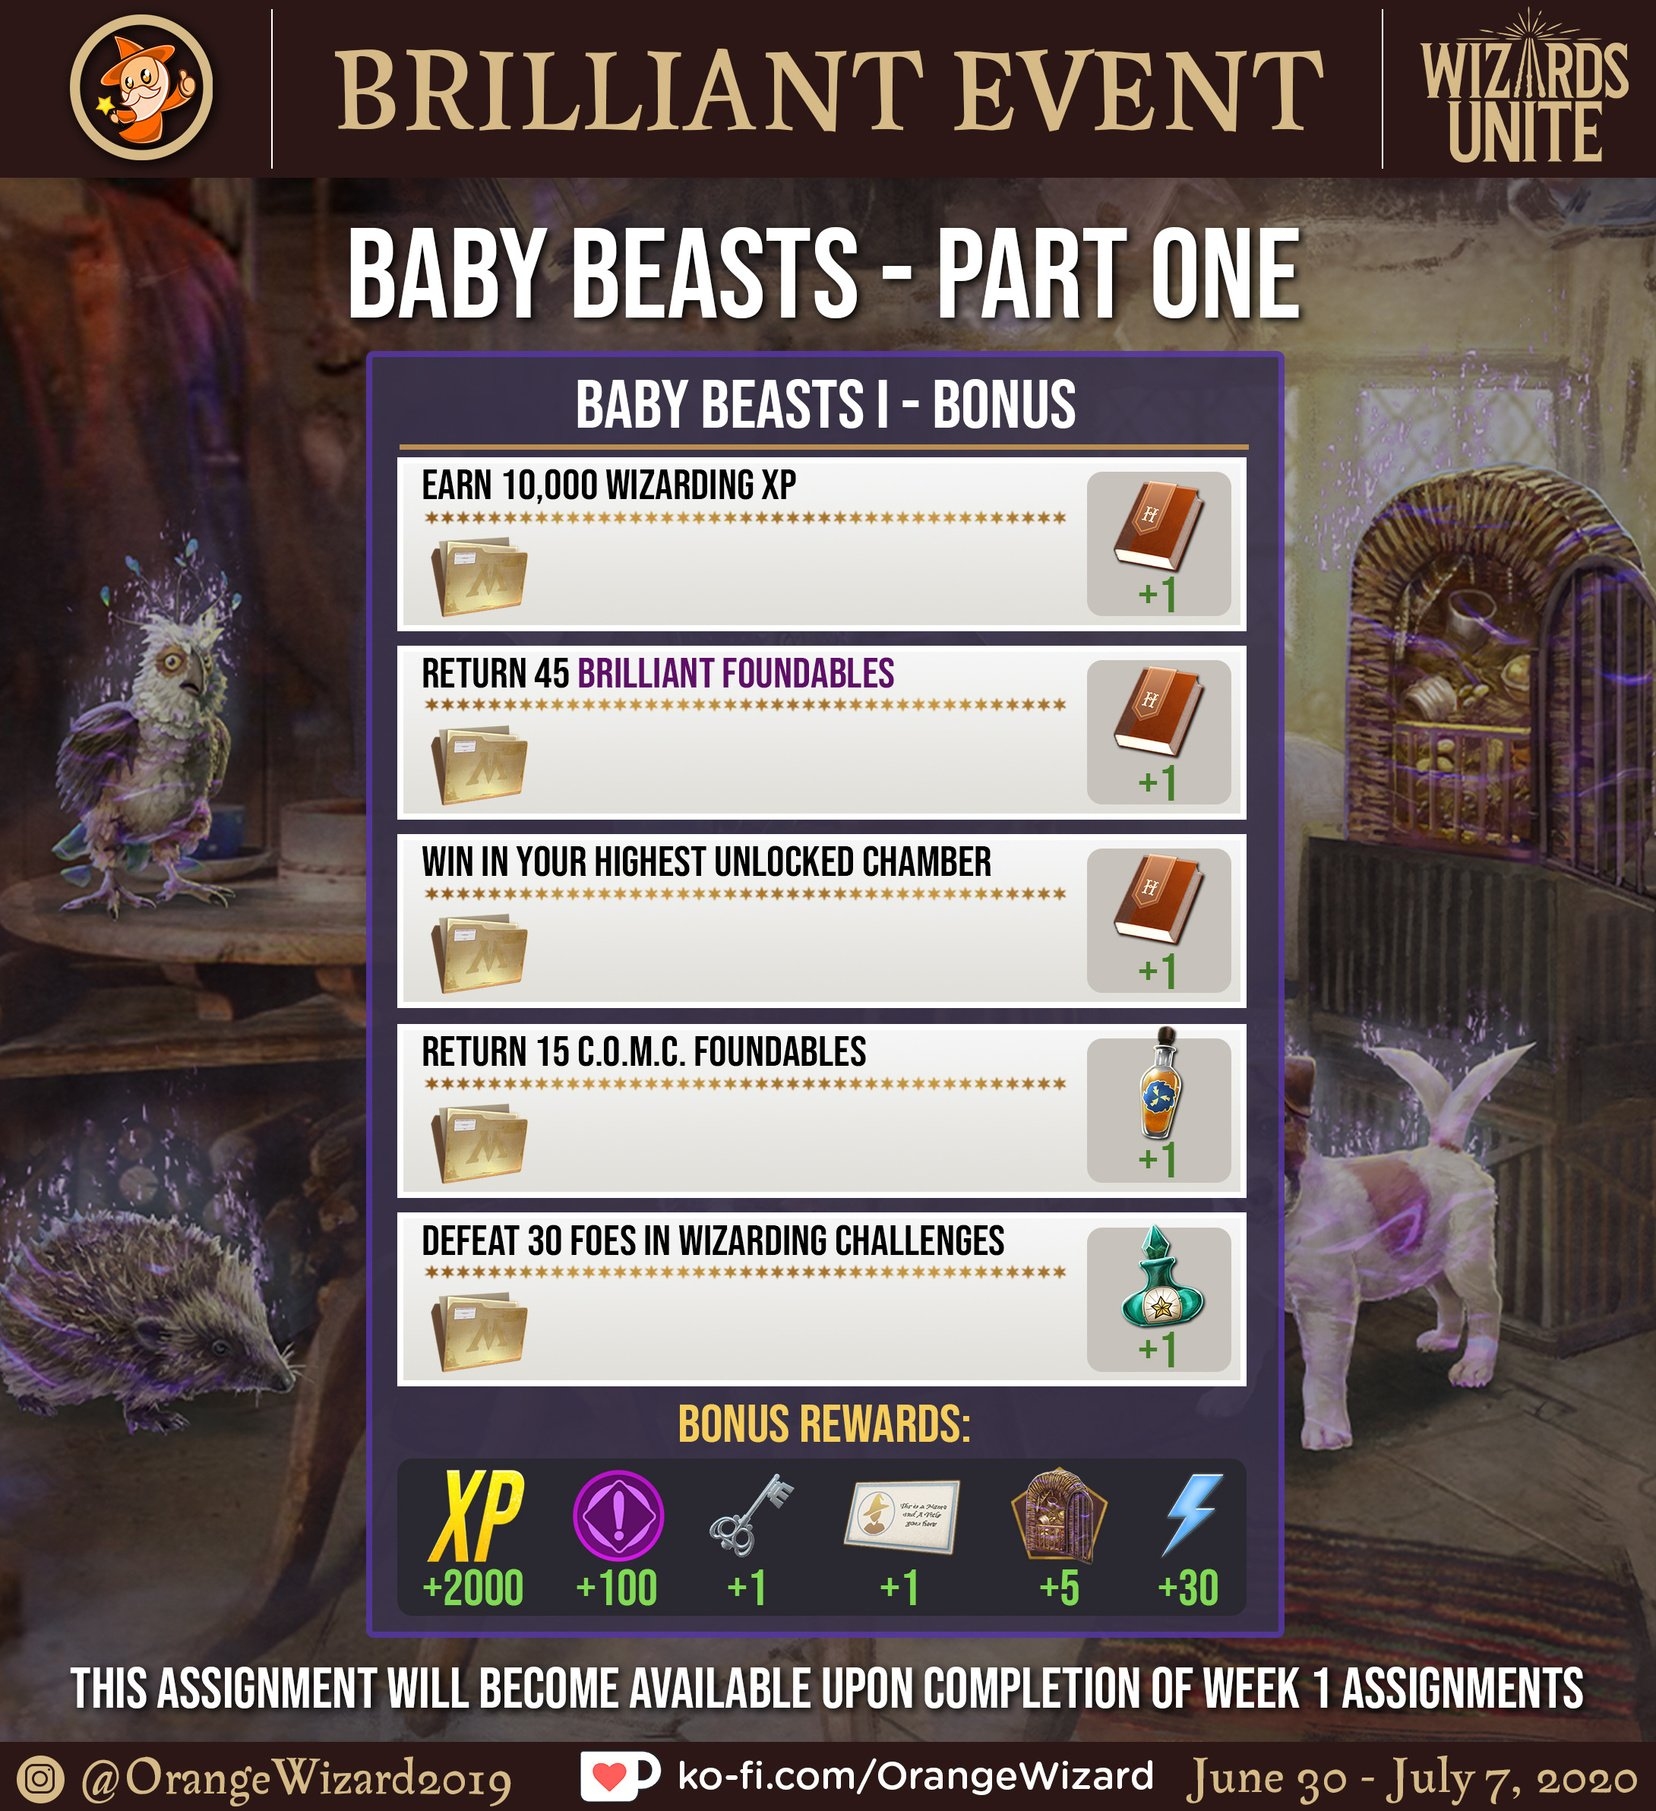 BRILLIANT_EVENT_-_BABY_BEASTS_I_-_BONUS_ASSIGNMENT.jpg